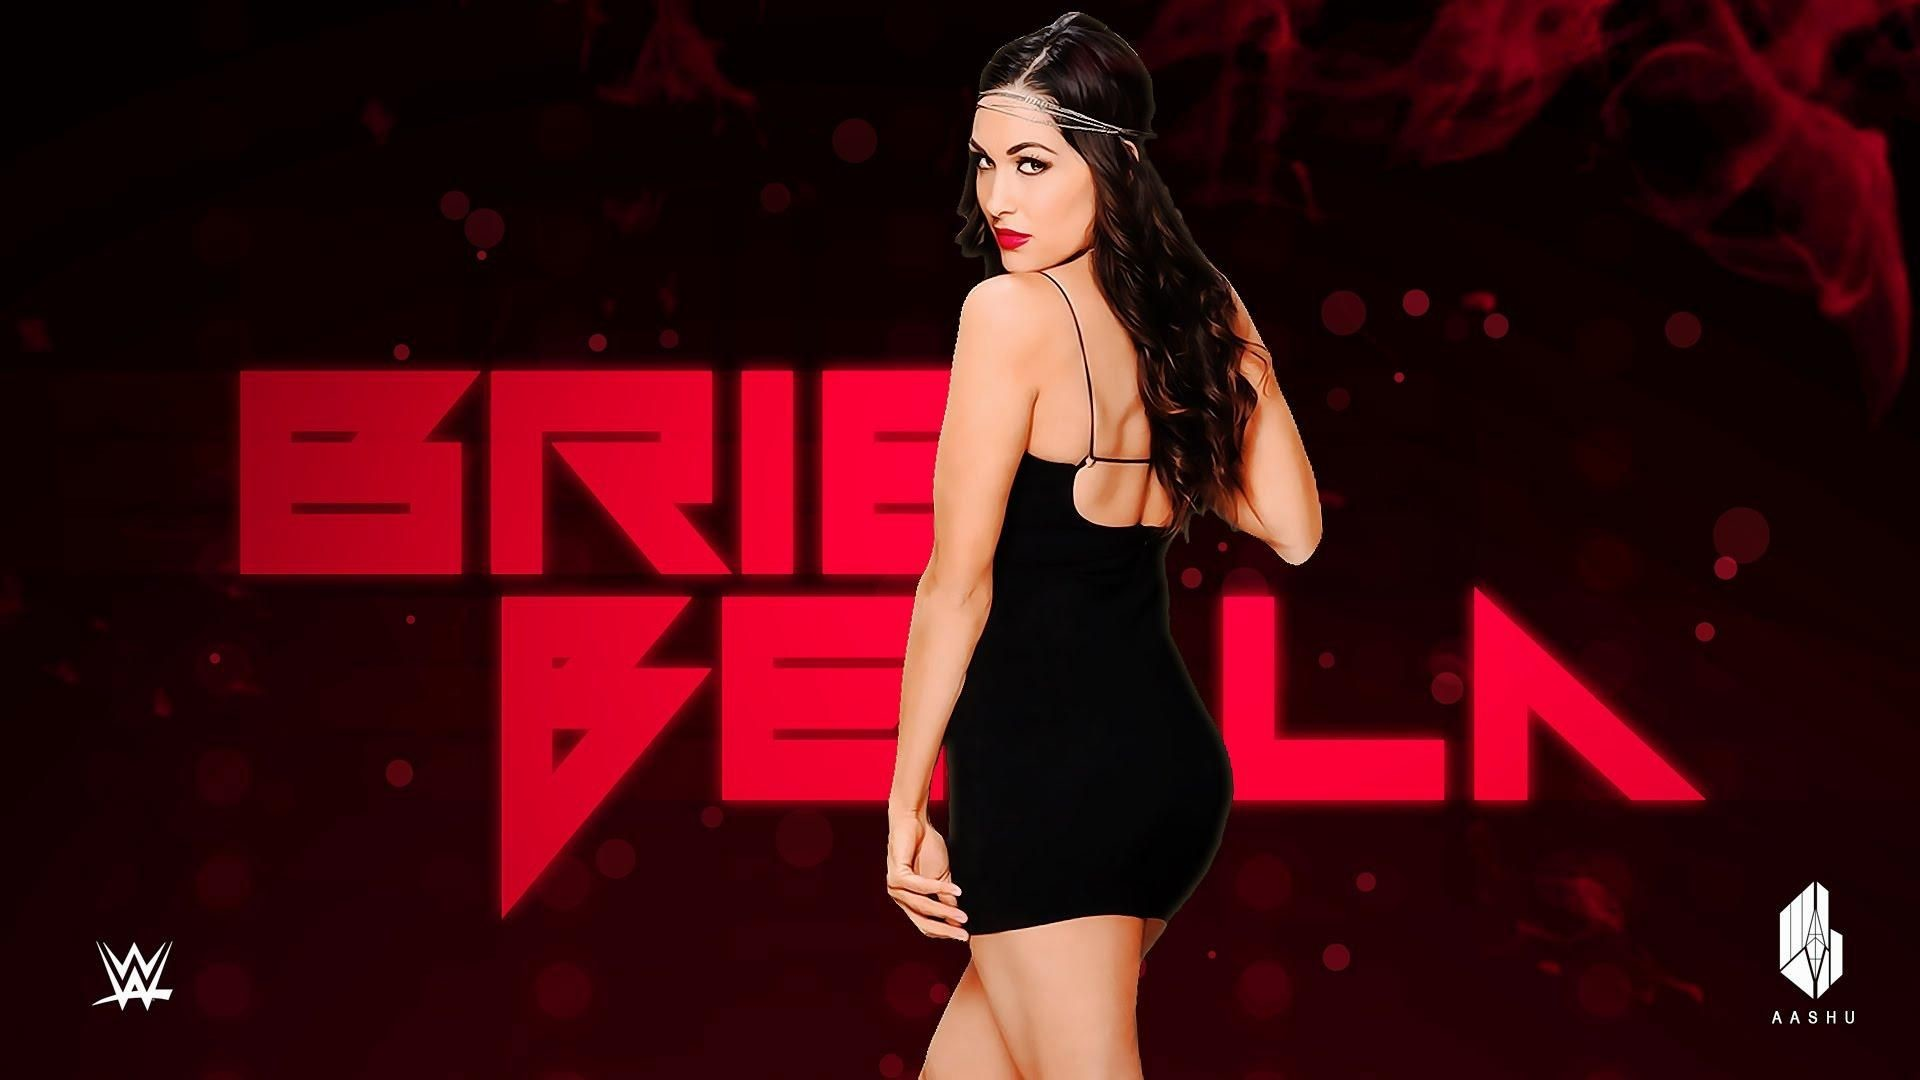 1920x1080 brie-bella-hd-wallpapers-2